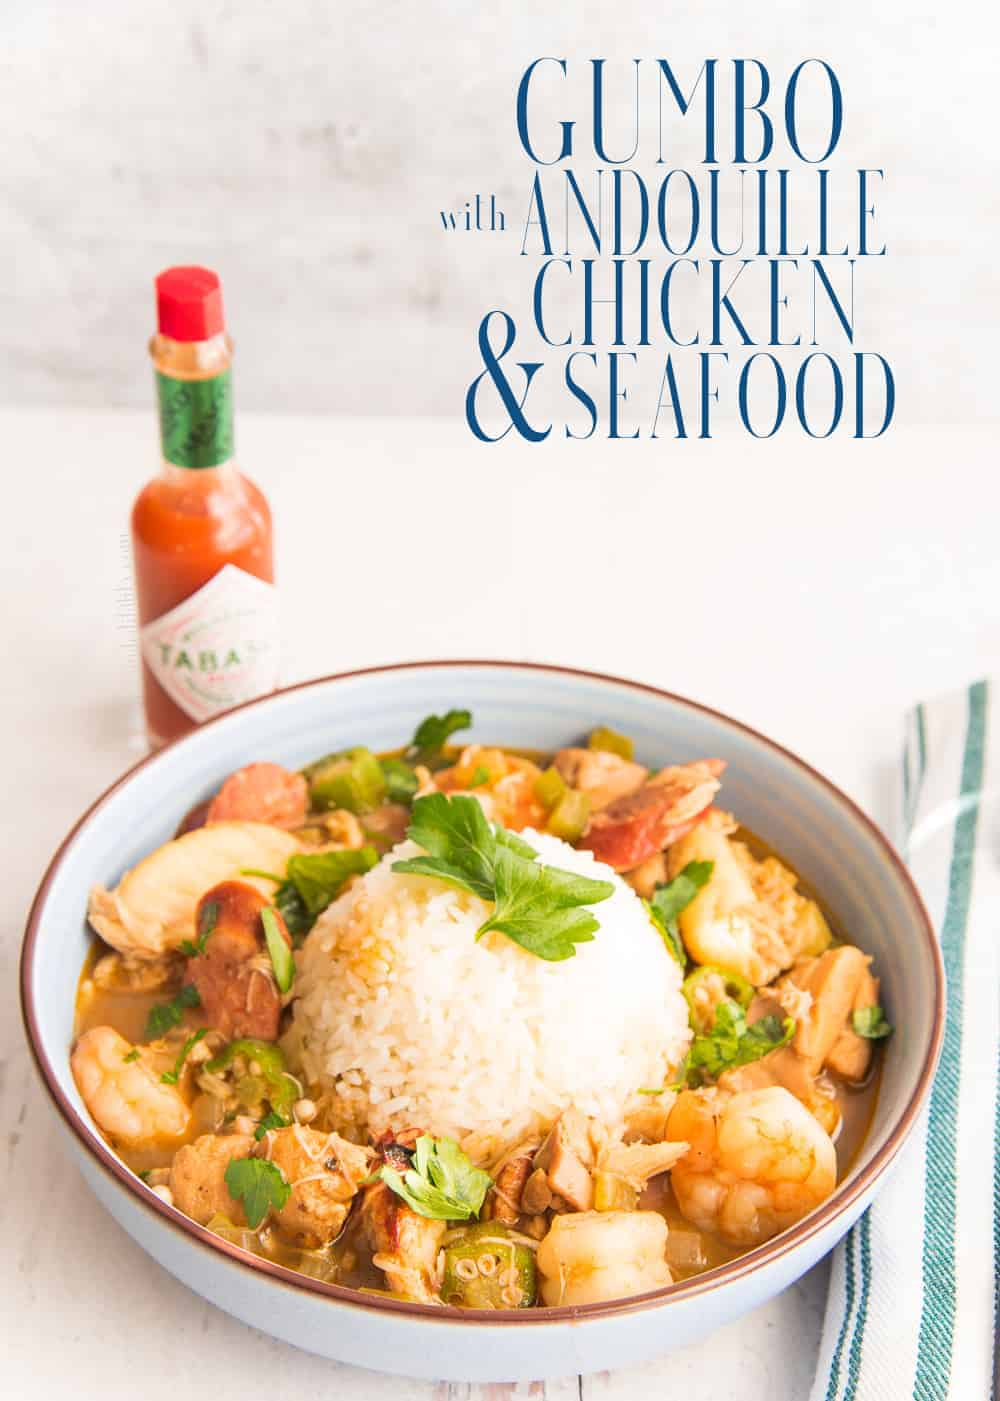 Gumbo is a North American favorite. Make yours flavorful with a deep roux, spiced sausage, chicken, and plump crab and shrimp. Gluten free. #gumbo #chickengumbo #seafoodgumbo #creolegumbo #cajungumbo #Creole #Cajun #NewOrleans #gumborecipe #dinnerrecipe #soup #stew #MardiGrasrecipe #Christmasgumbo via @ediblesense